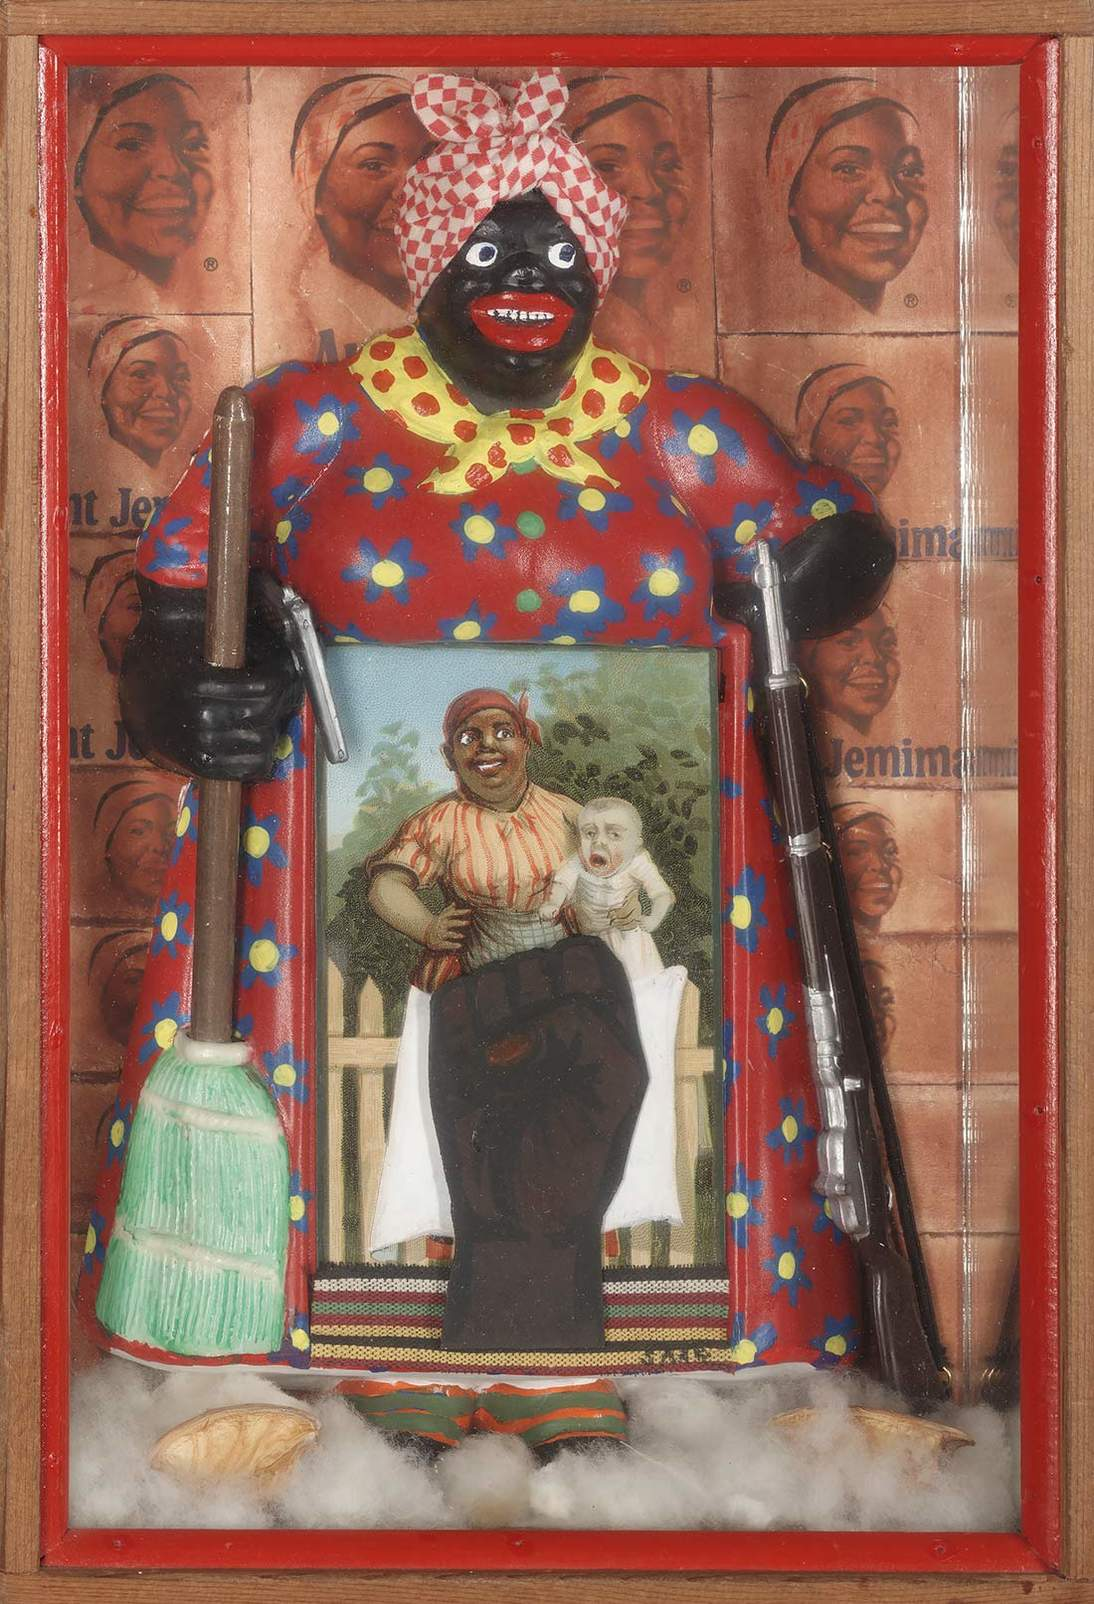 """Betye Saar, """"The Liberation of Aunt Jemima,"""" 1972. Wood, cotton, plastic, metal, acrylic paint, printed paper and fabric,  11.375 x 8 in. (29.8 x 20.3 cm). Collection of Berkeley Art Museum and Pacific Film Archive, Berkeley, California; purchased with the aid of funds from the National Endowment for the Arts (selected by The Committee for the Acquisition of Afro-American Art). Courtesy of the artist and Roberts Projects, Los Angeles, California. Photo Benjamin Blackwell"""